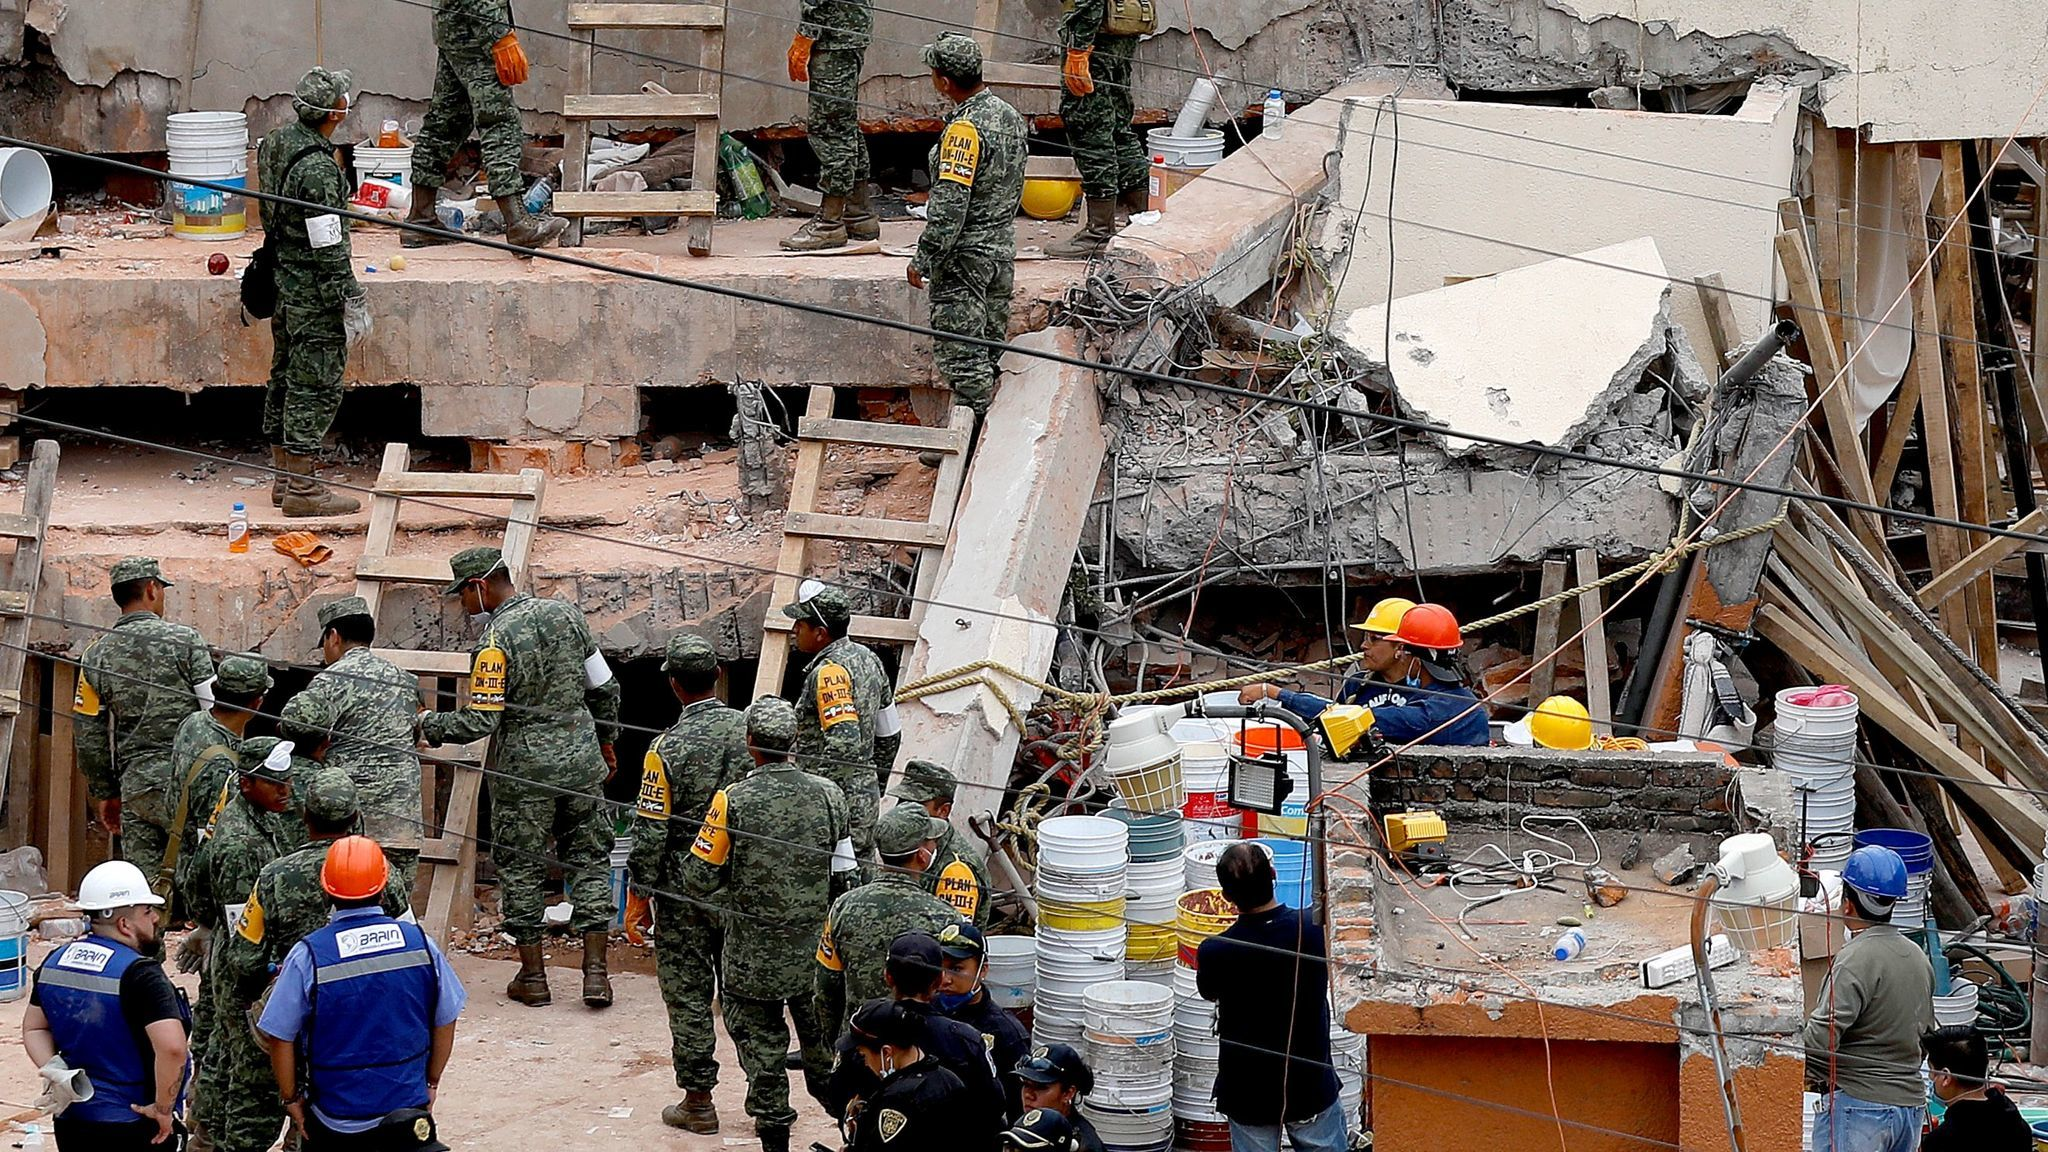 Southern Mexico rocked by magnitude 5.7 natural disaster